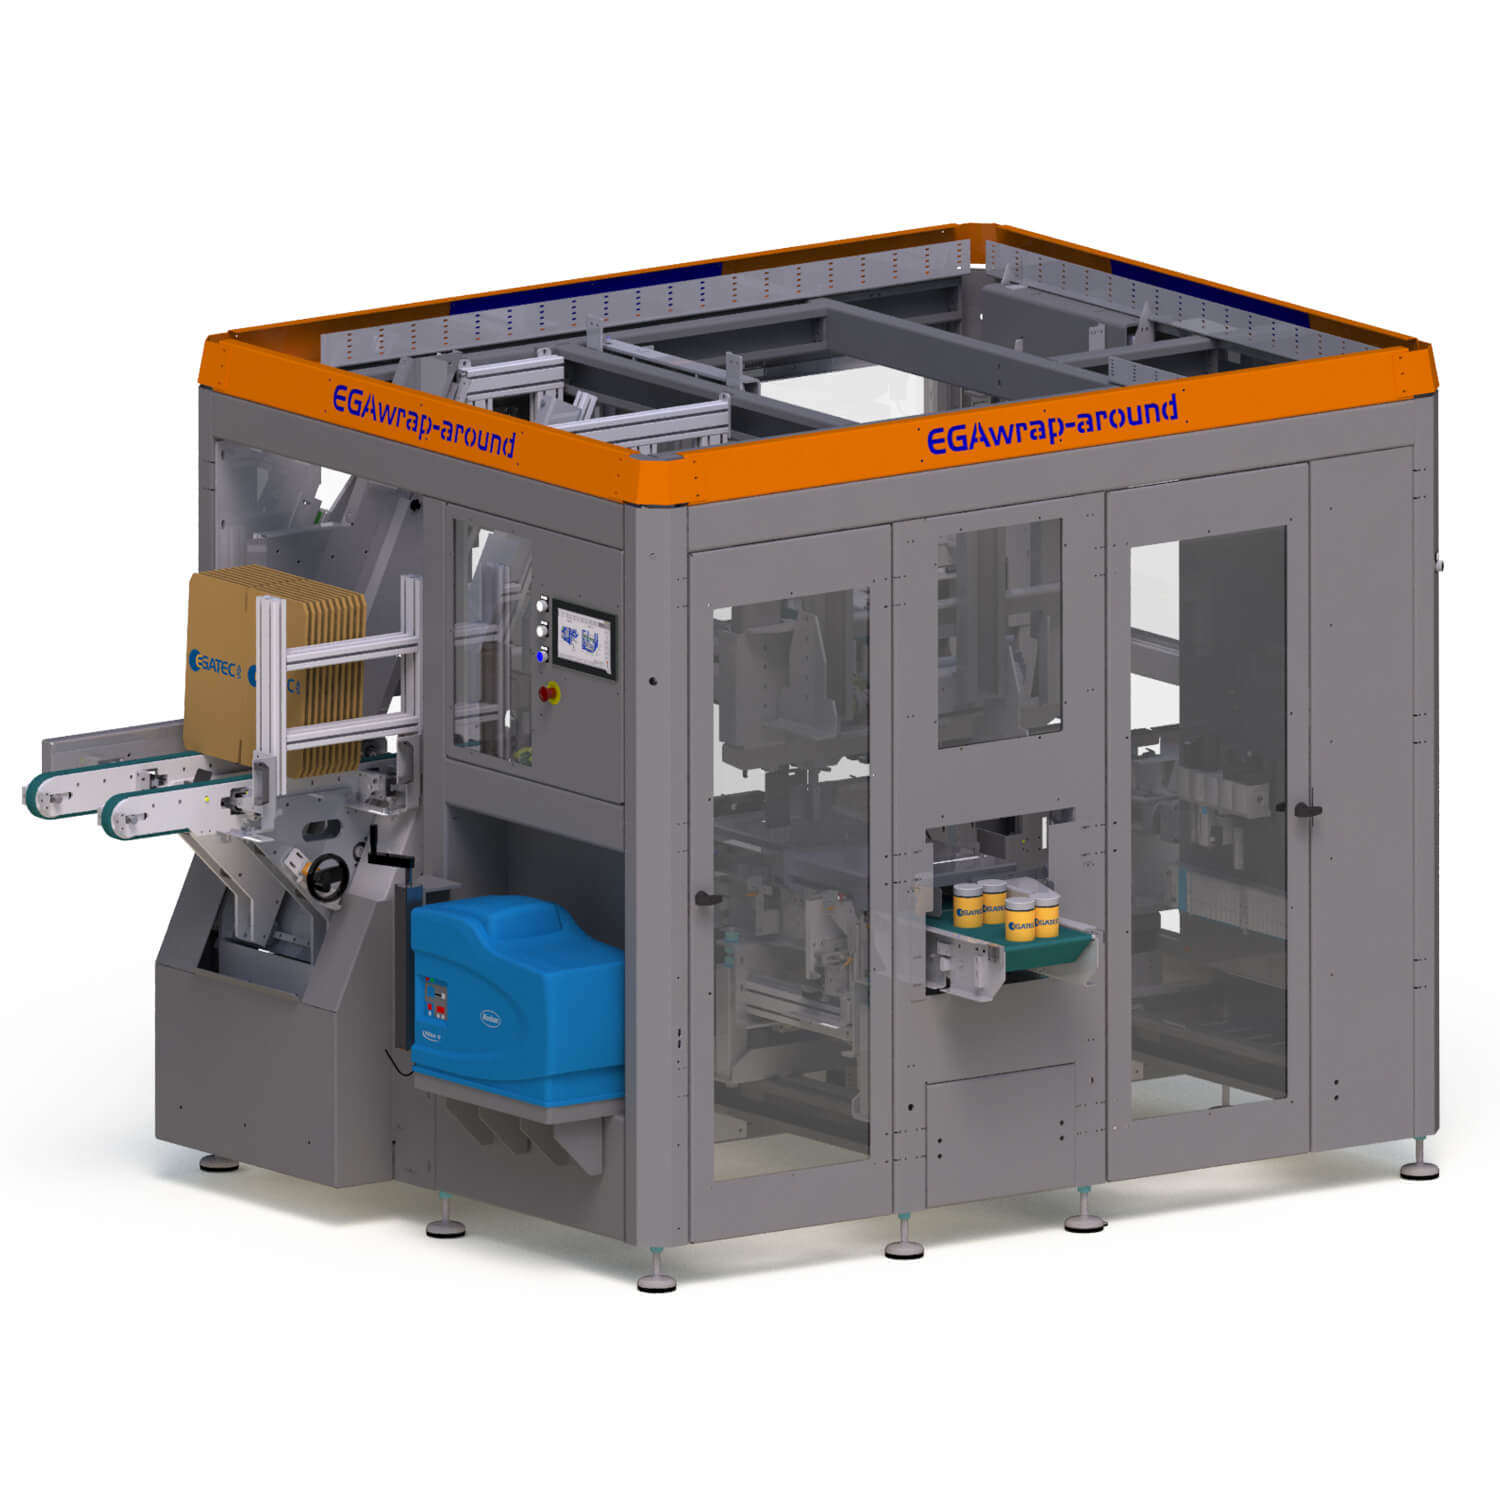 Wrap-around packaging machine